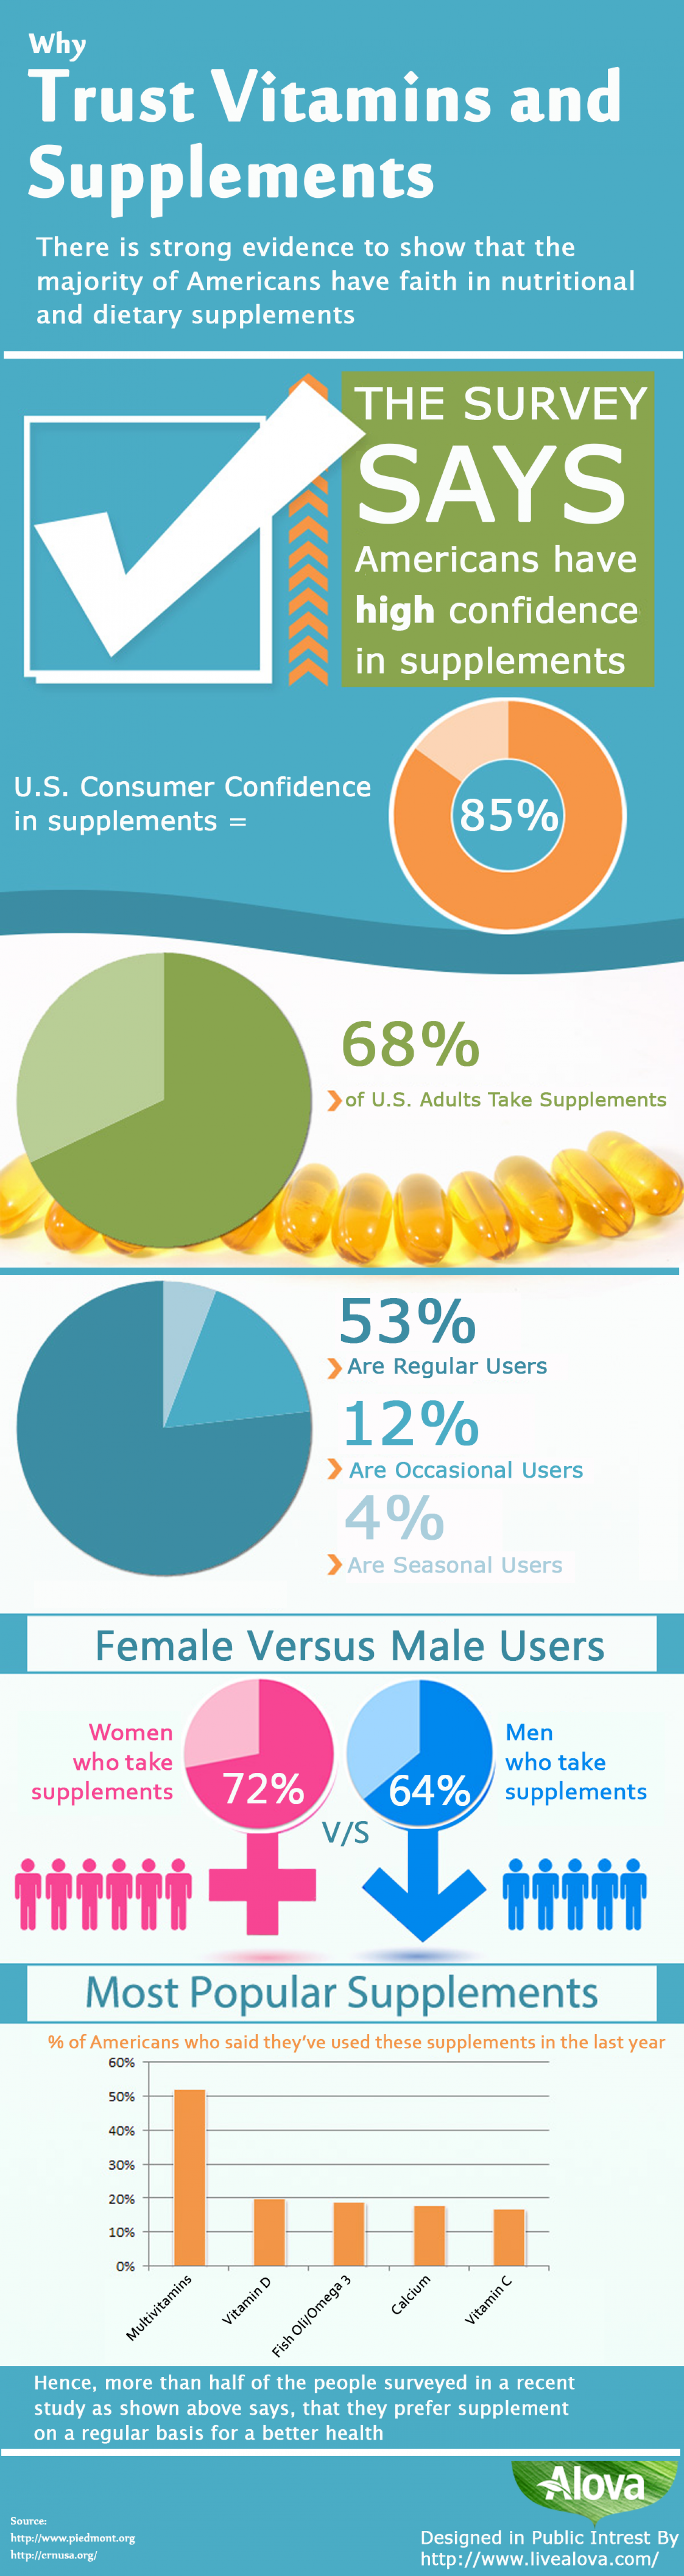 Why-trust-Vitamins-and-supplements Infographic